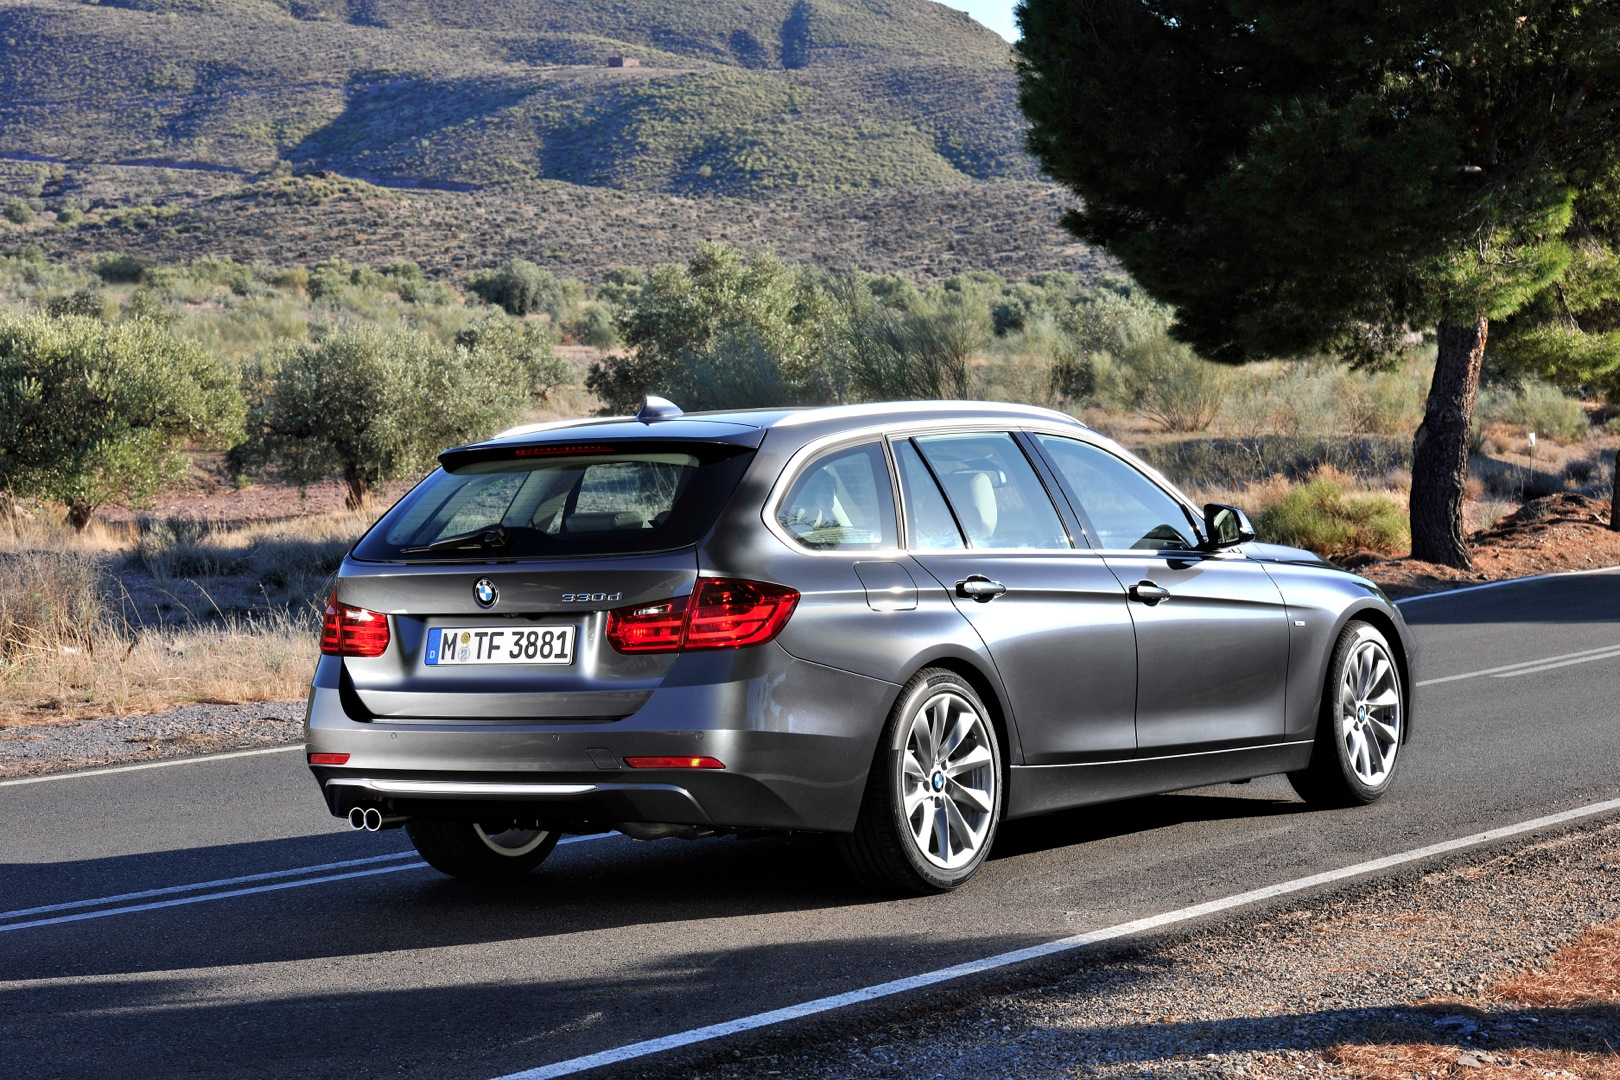 Bmw 3 Series Touring Xdrive Bmw F30 320i Xdrive Touring Review By Top Gear Autoevolution